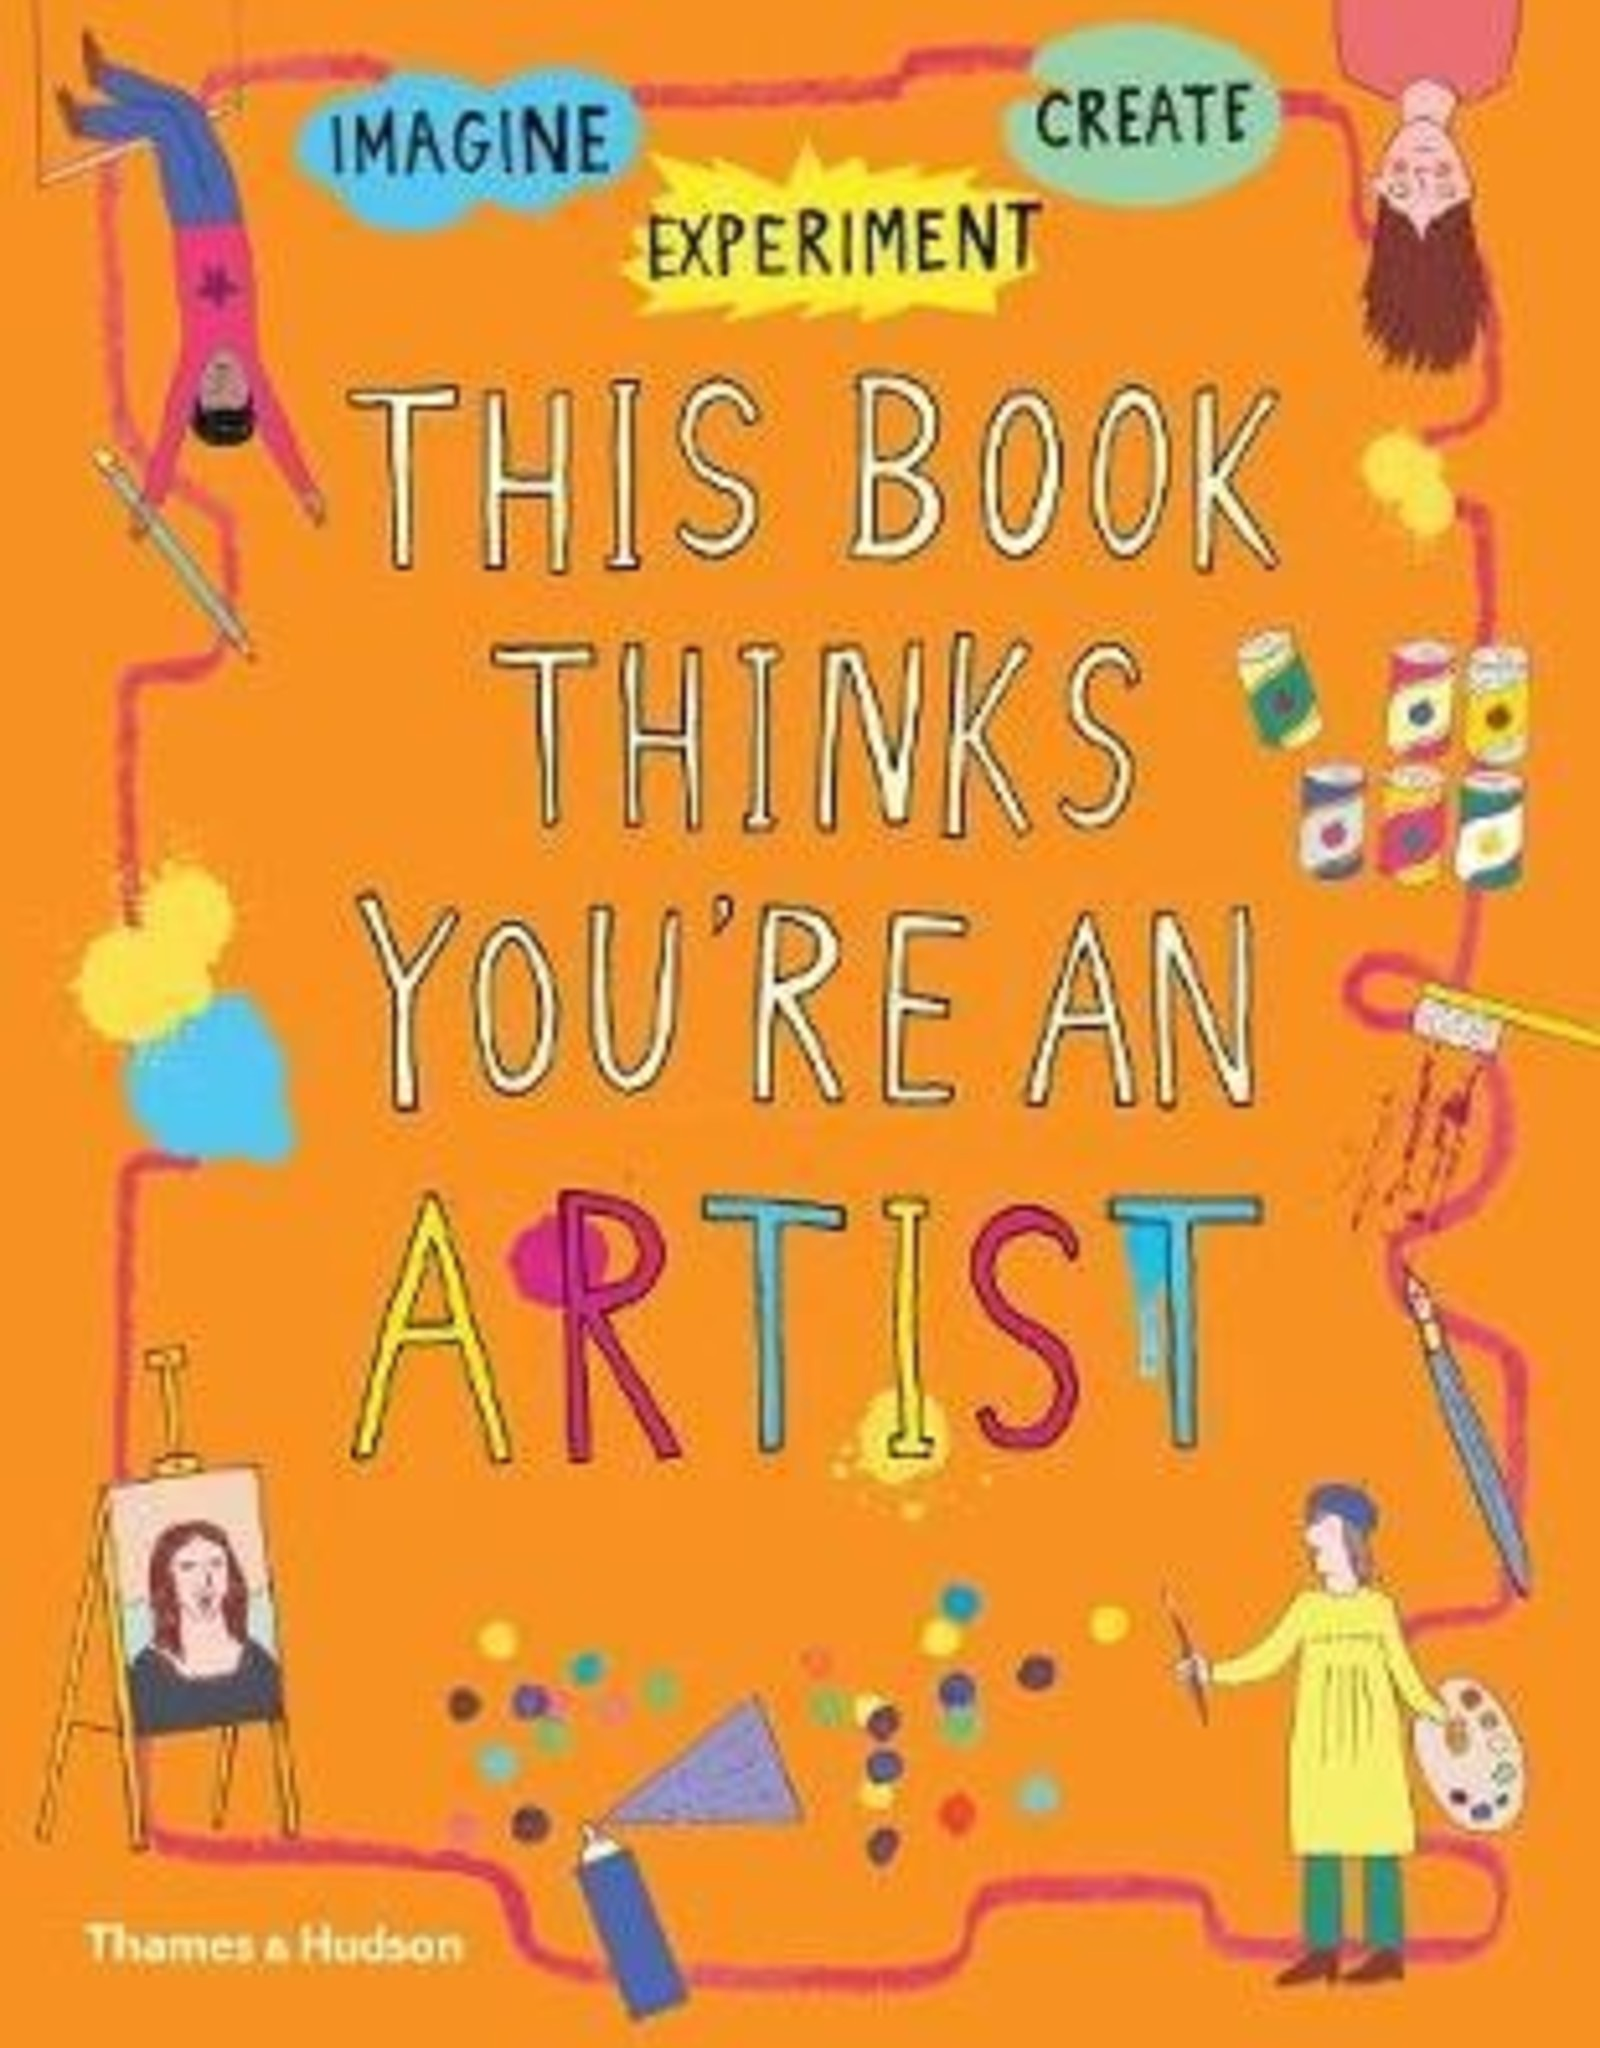 Argosy This book thinks you're an Artist